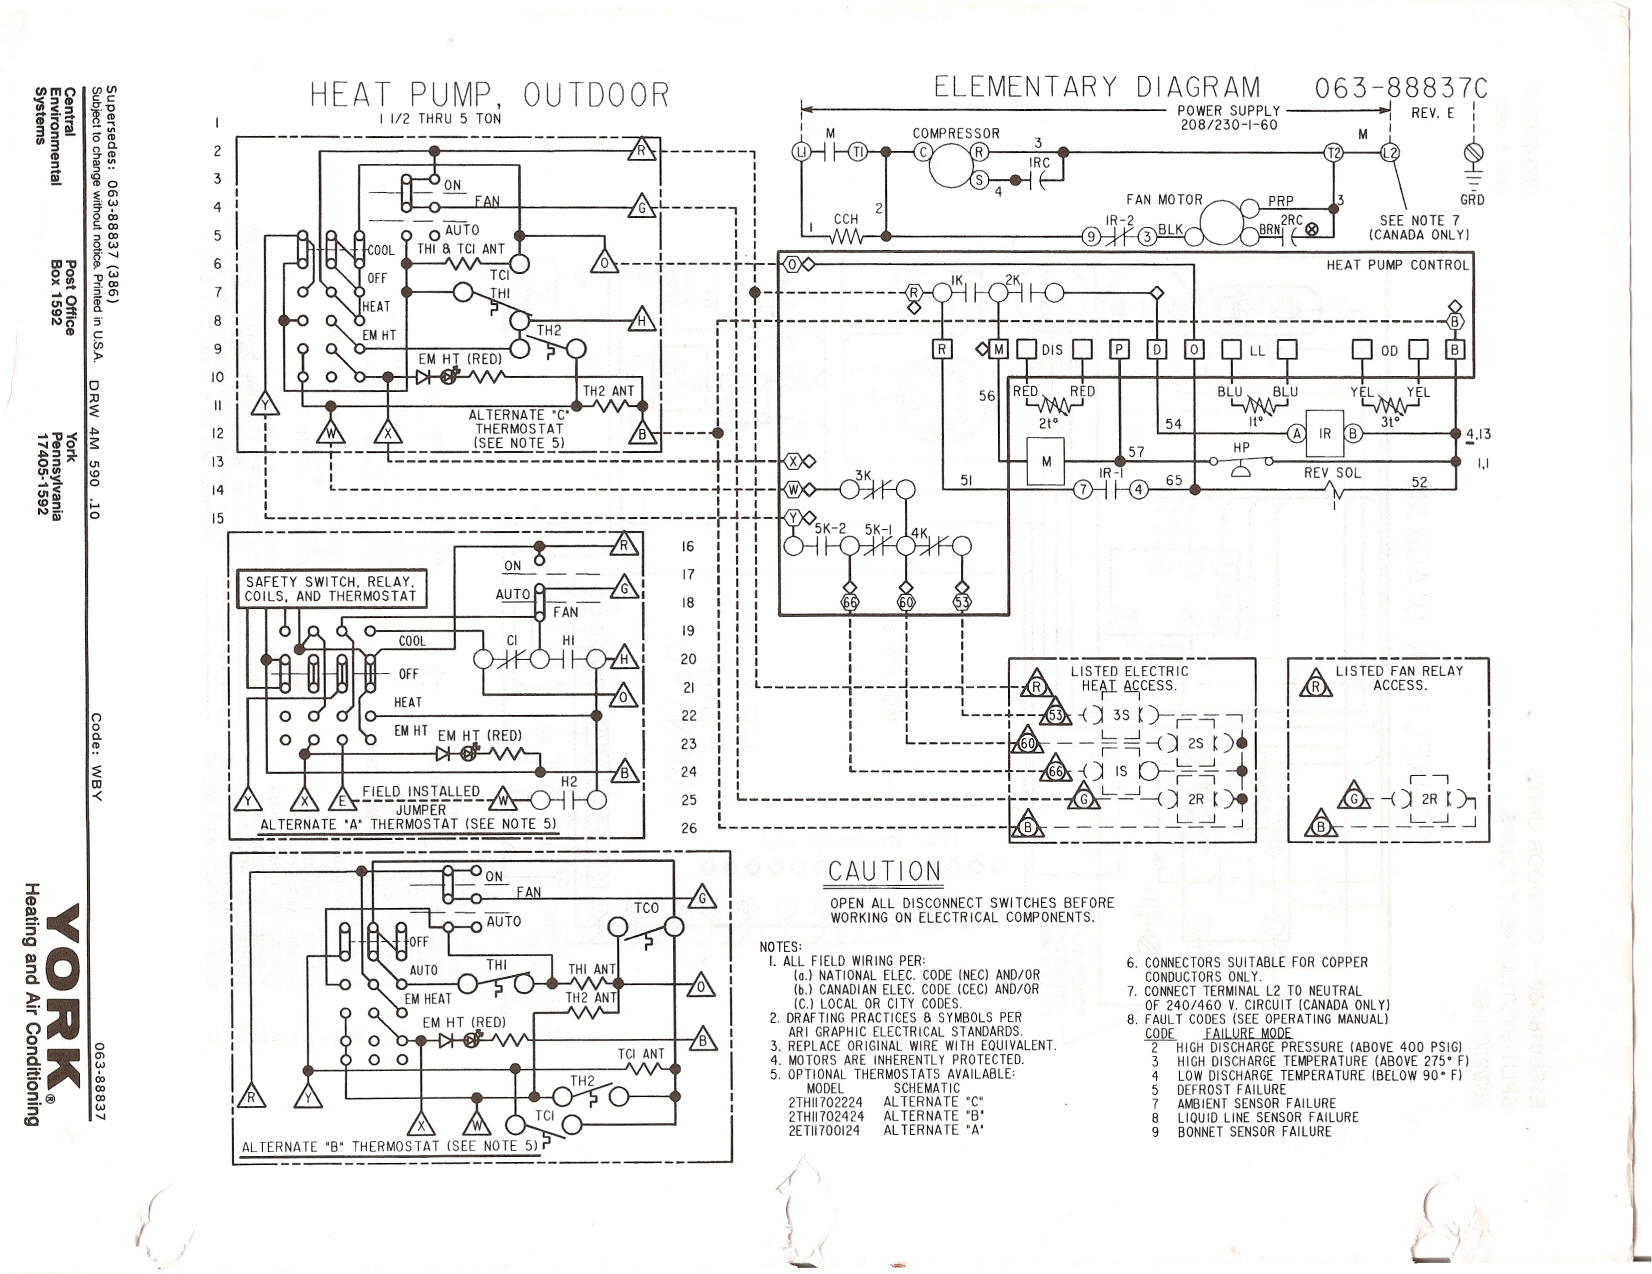 Electrical Wiring Djf Lennox Furnace With Honeywell Diagram York - Nest Wiring Diagram Heat Pump, Air Conditioner, Boiler